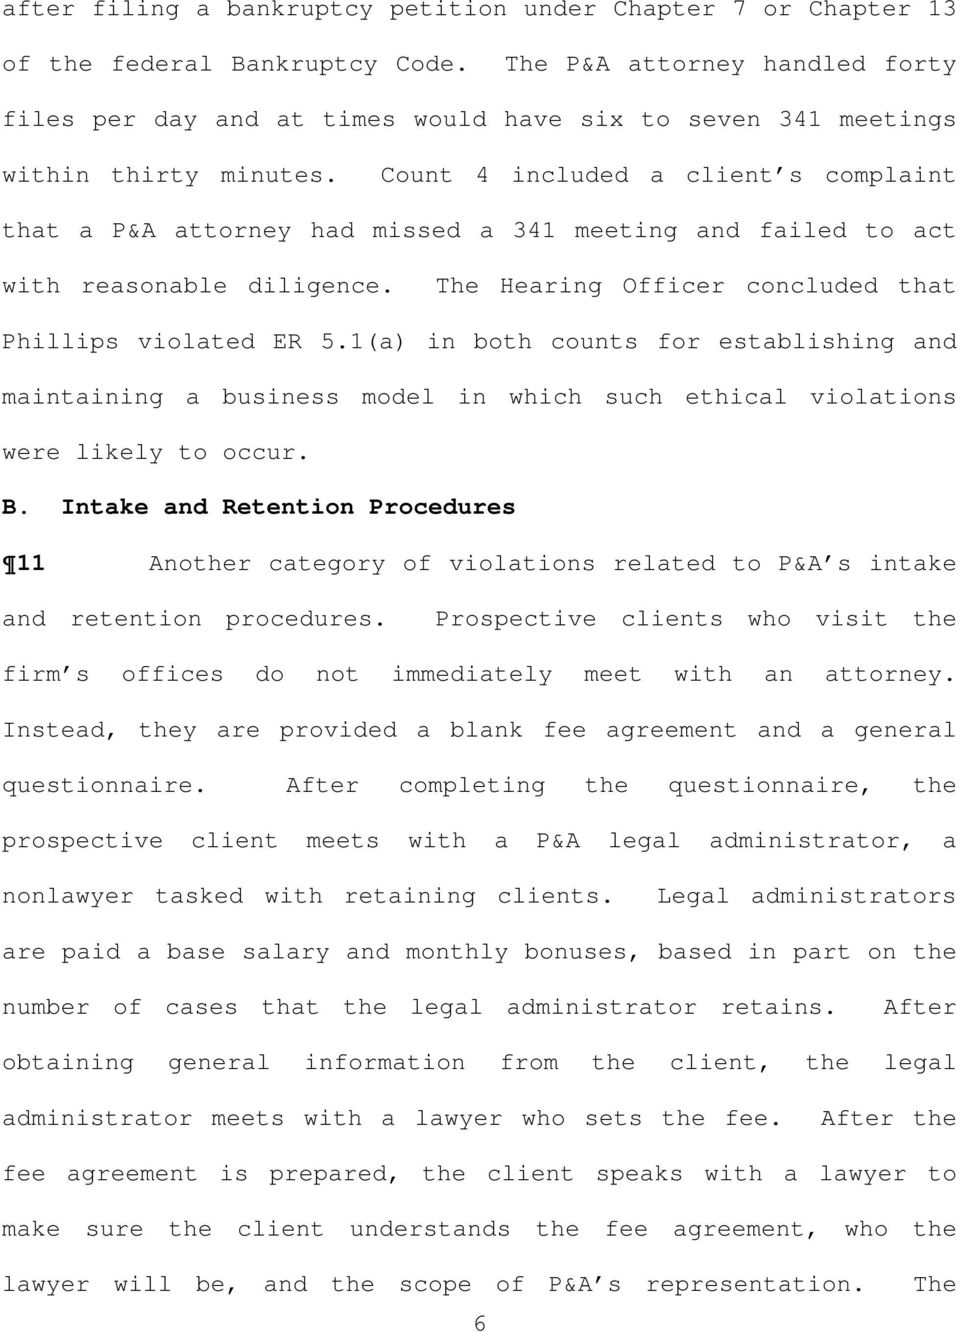 Count 4 included a client s complaint that a P&A attorney had missed a 341 meeting and failed to act with reasonable diligence. The Hearing Officer concluded that Phillips violated ER 5.